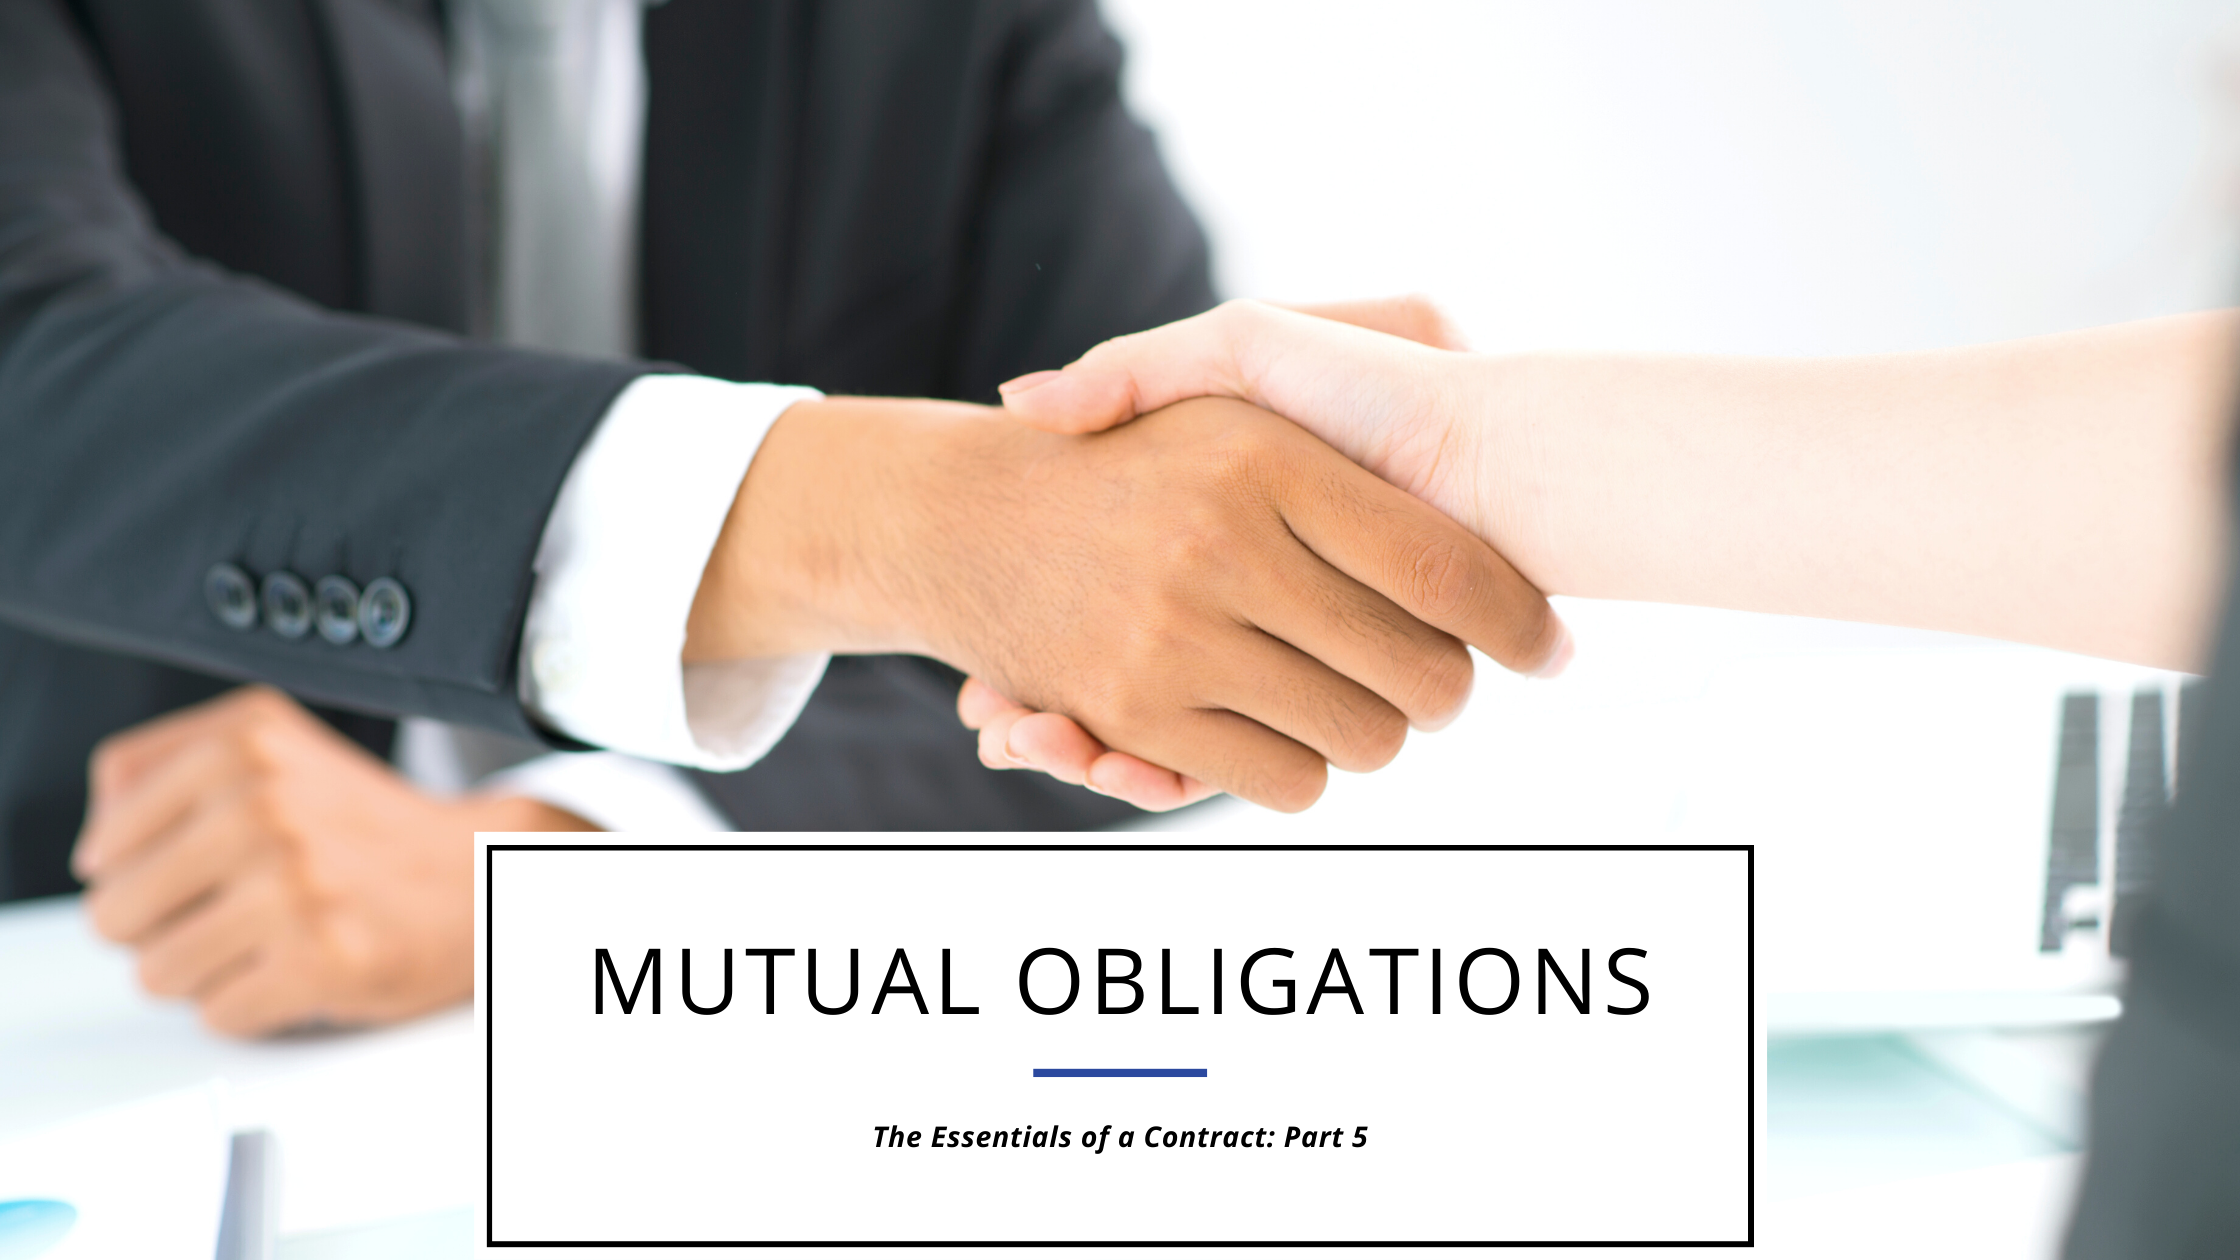 a mutual obligations clause is essential